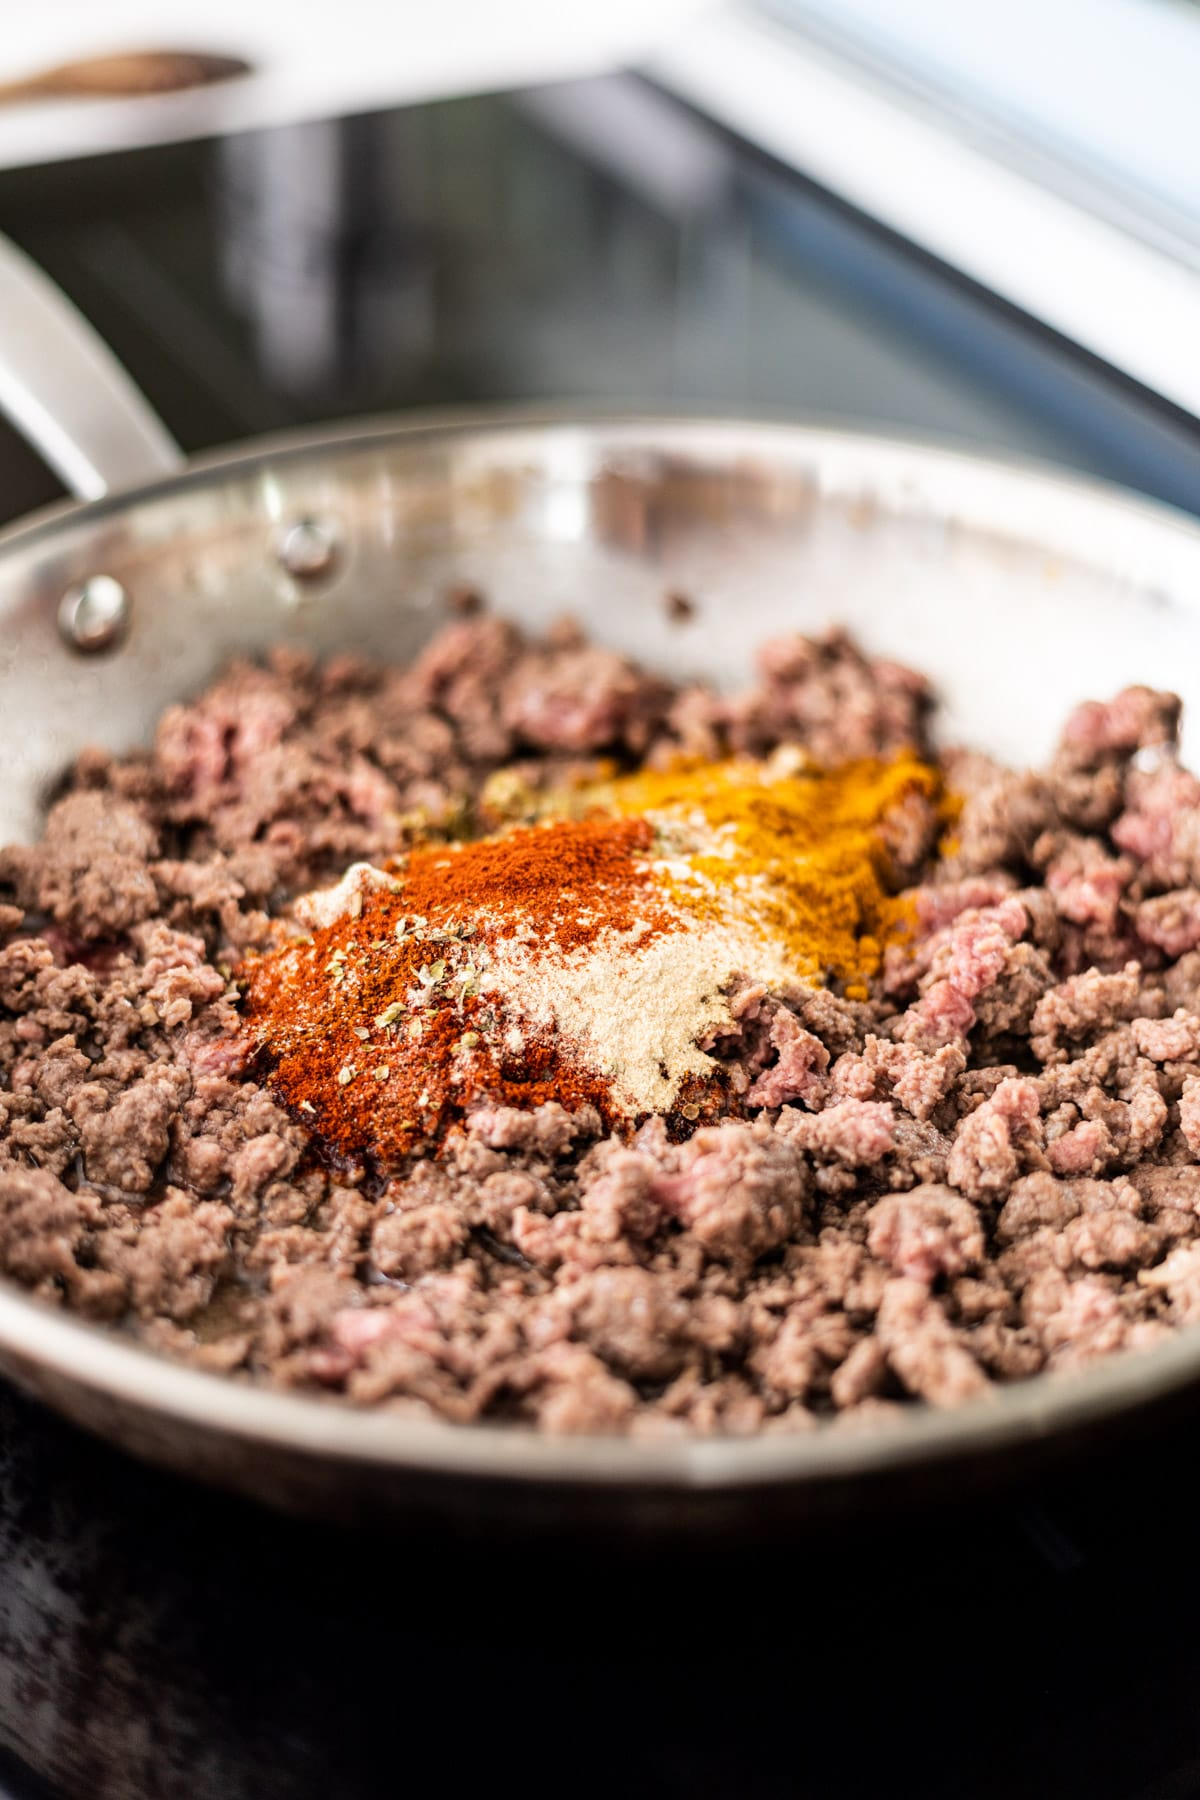 Browned beef cooking in a skillet with spices on top.